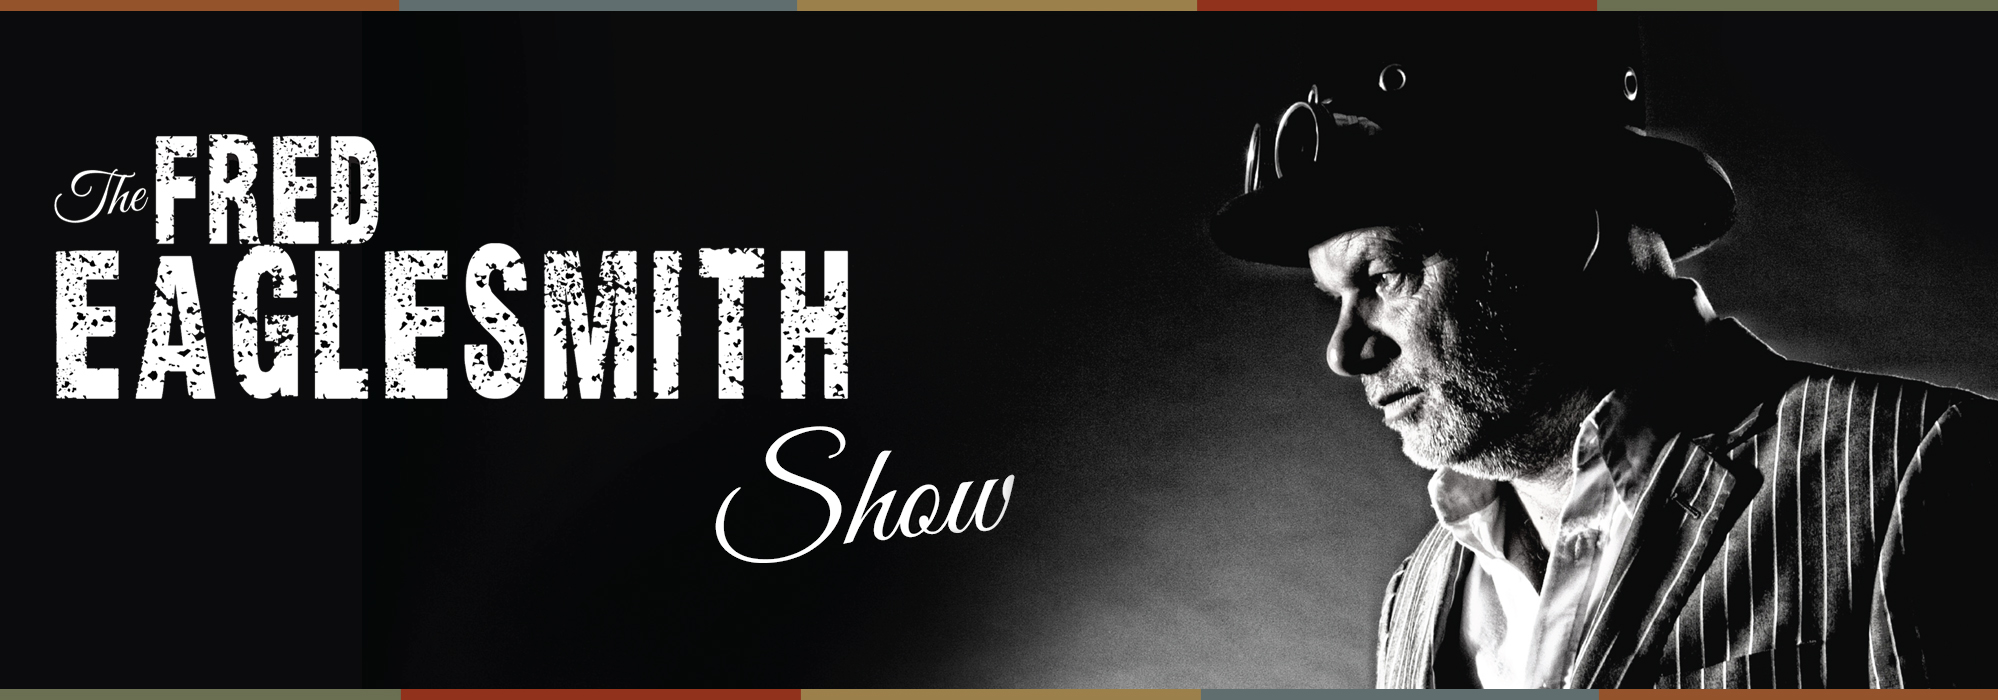 The Fred Eaglesmith Show banner